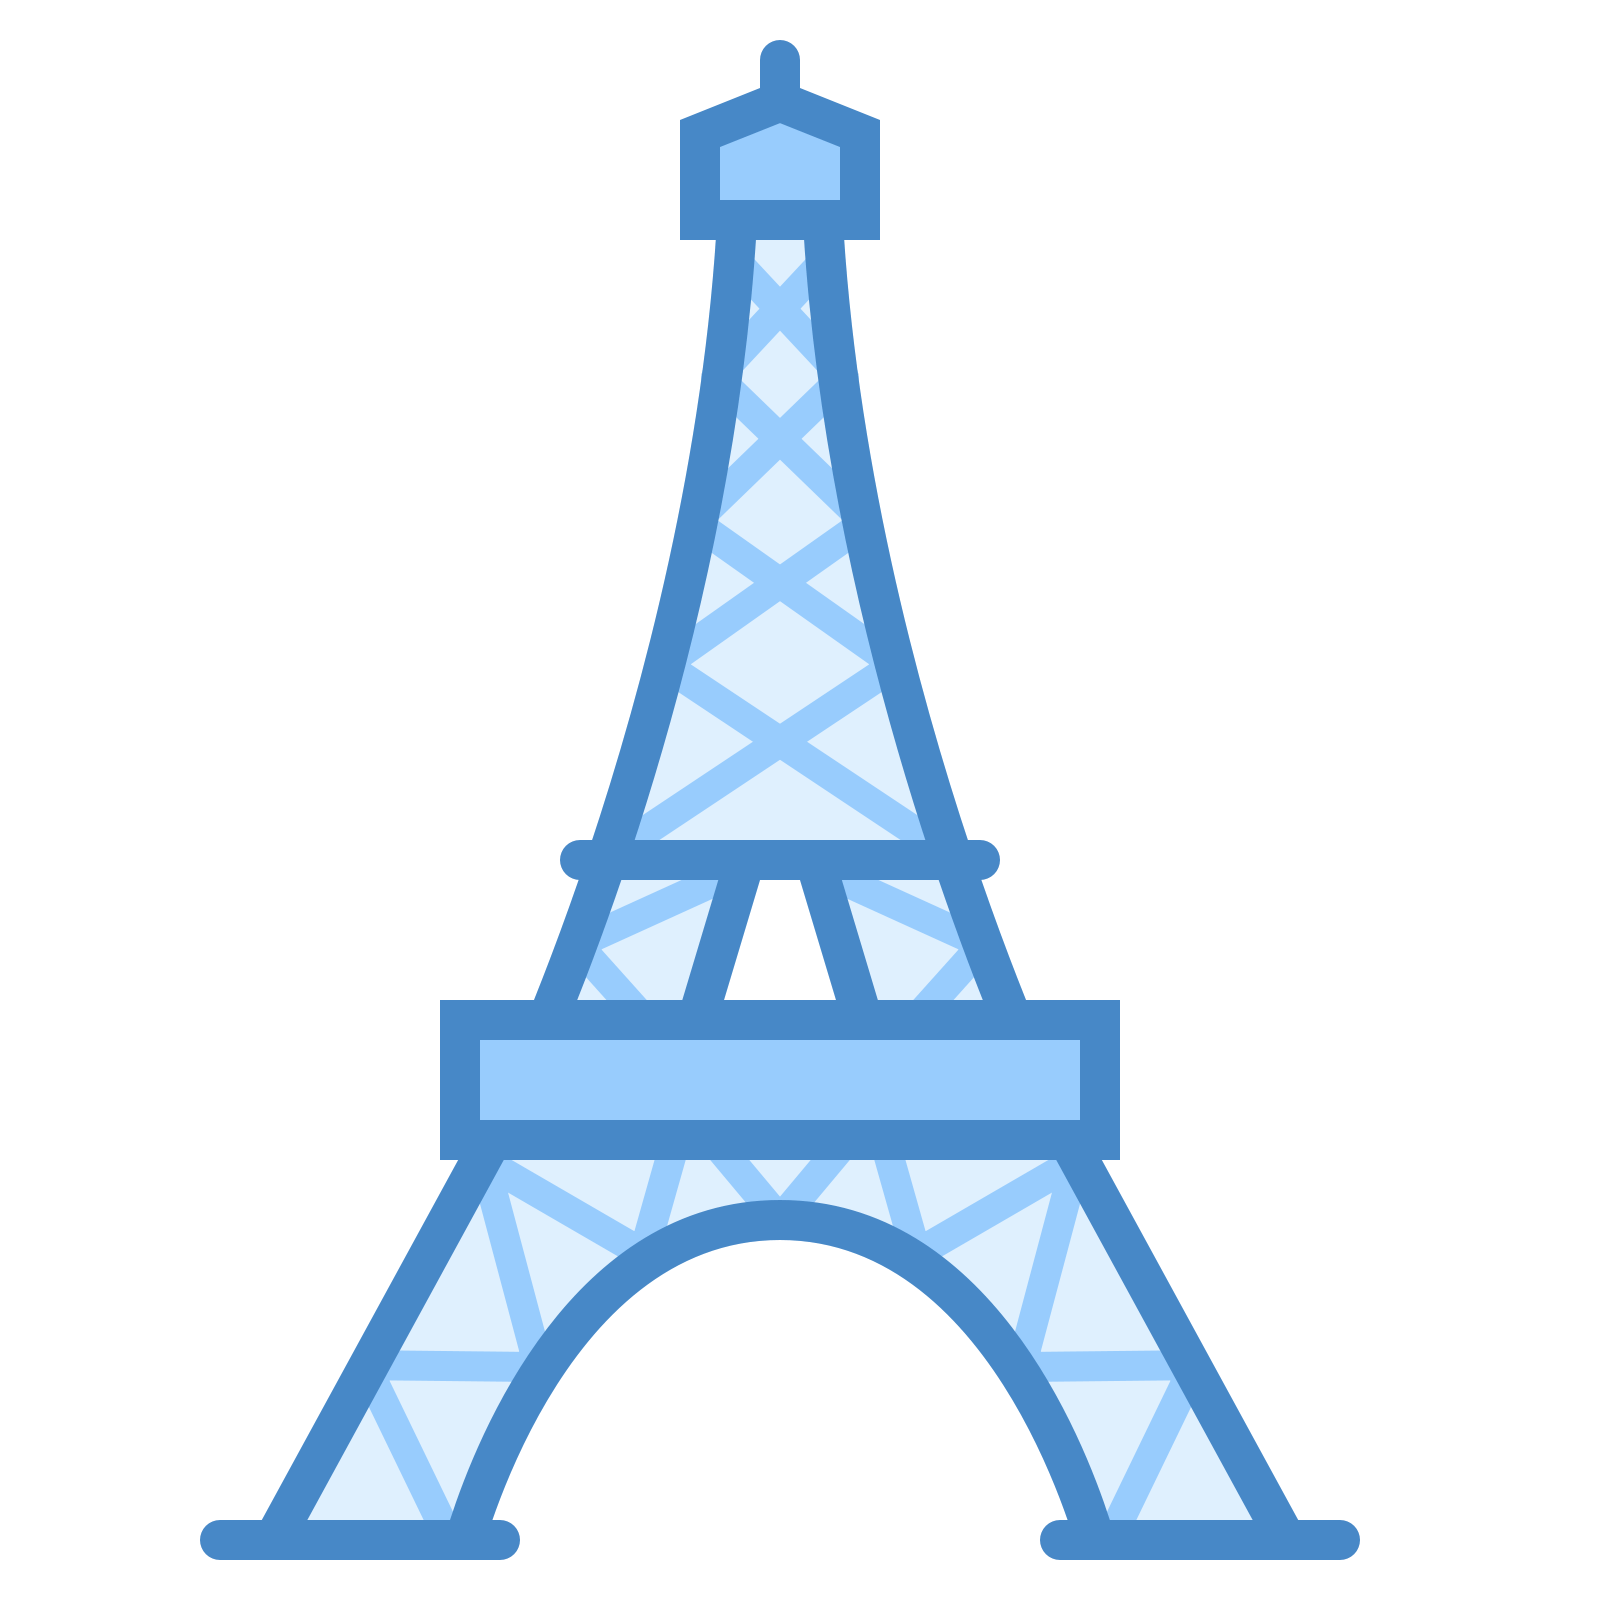 Eiffel Tower PNG images free download.